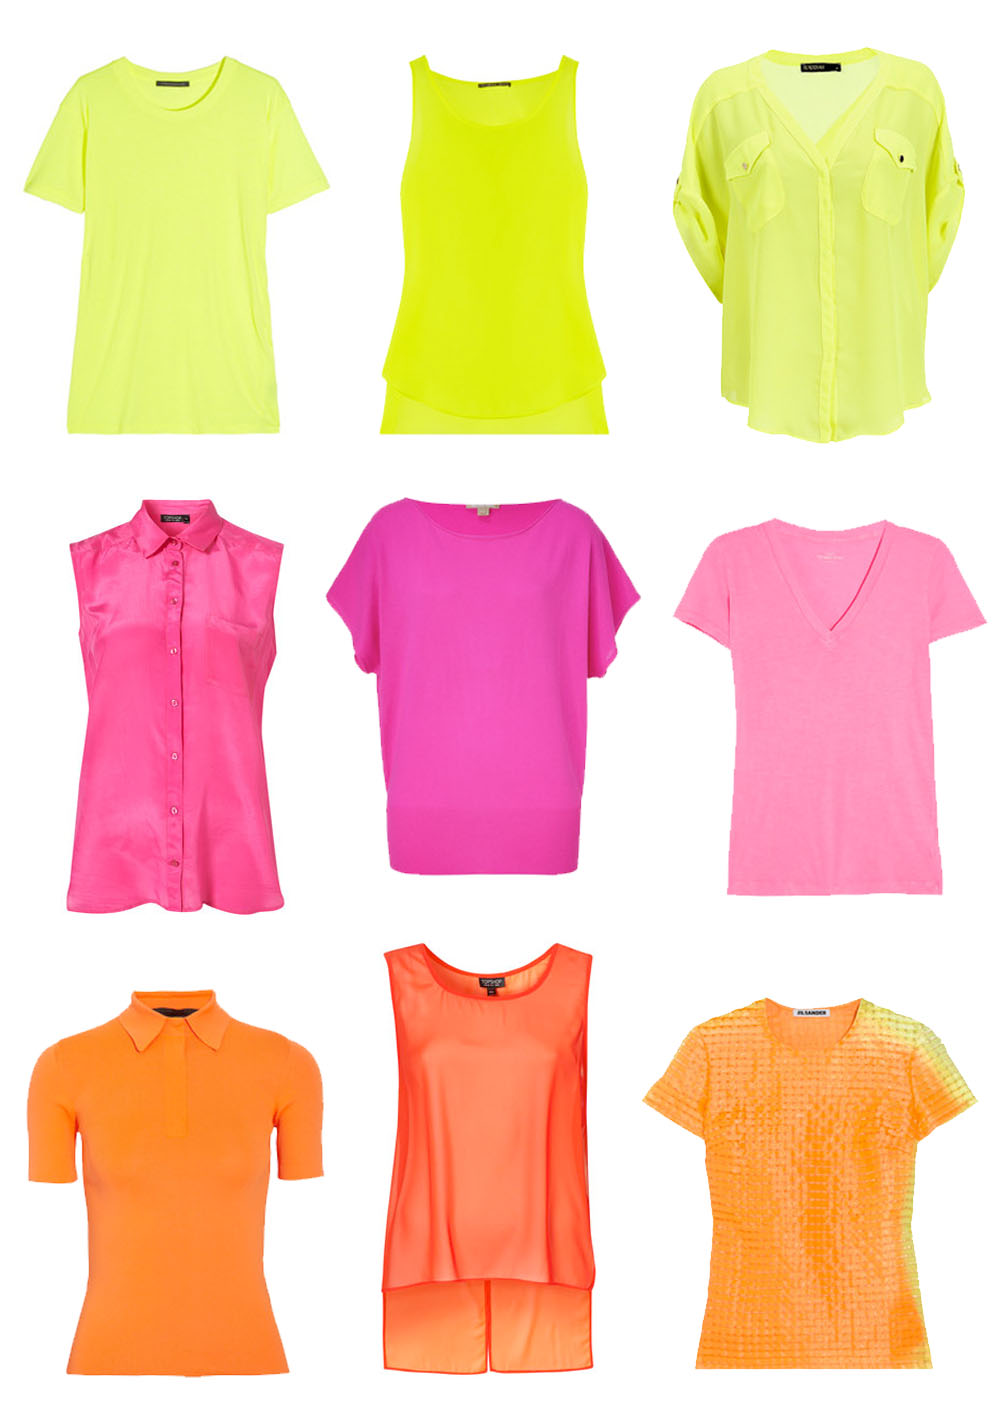 Theory Neon Yellow Blouse 88